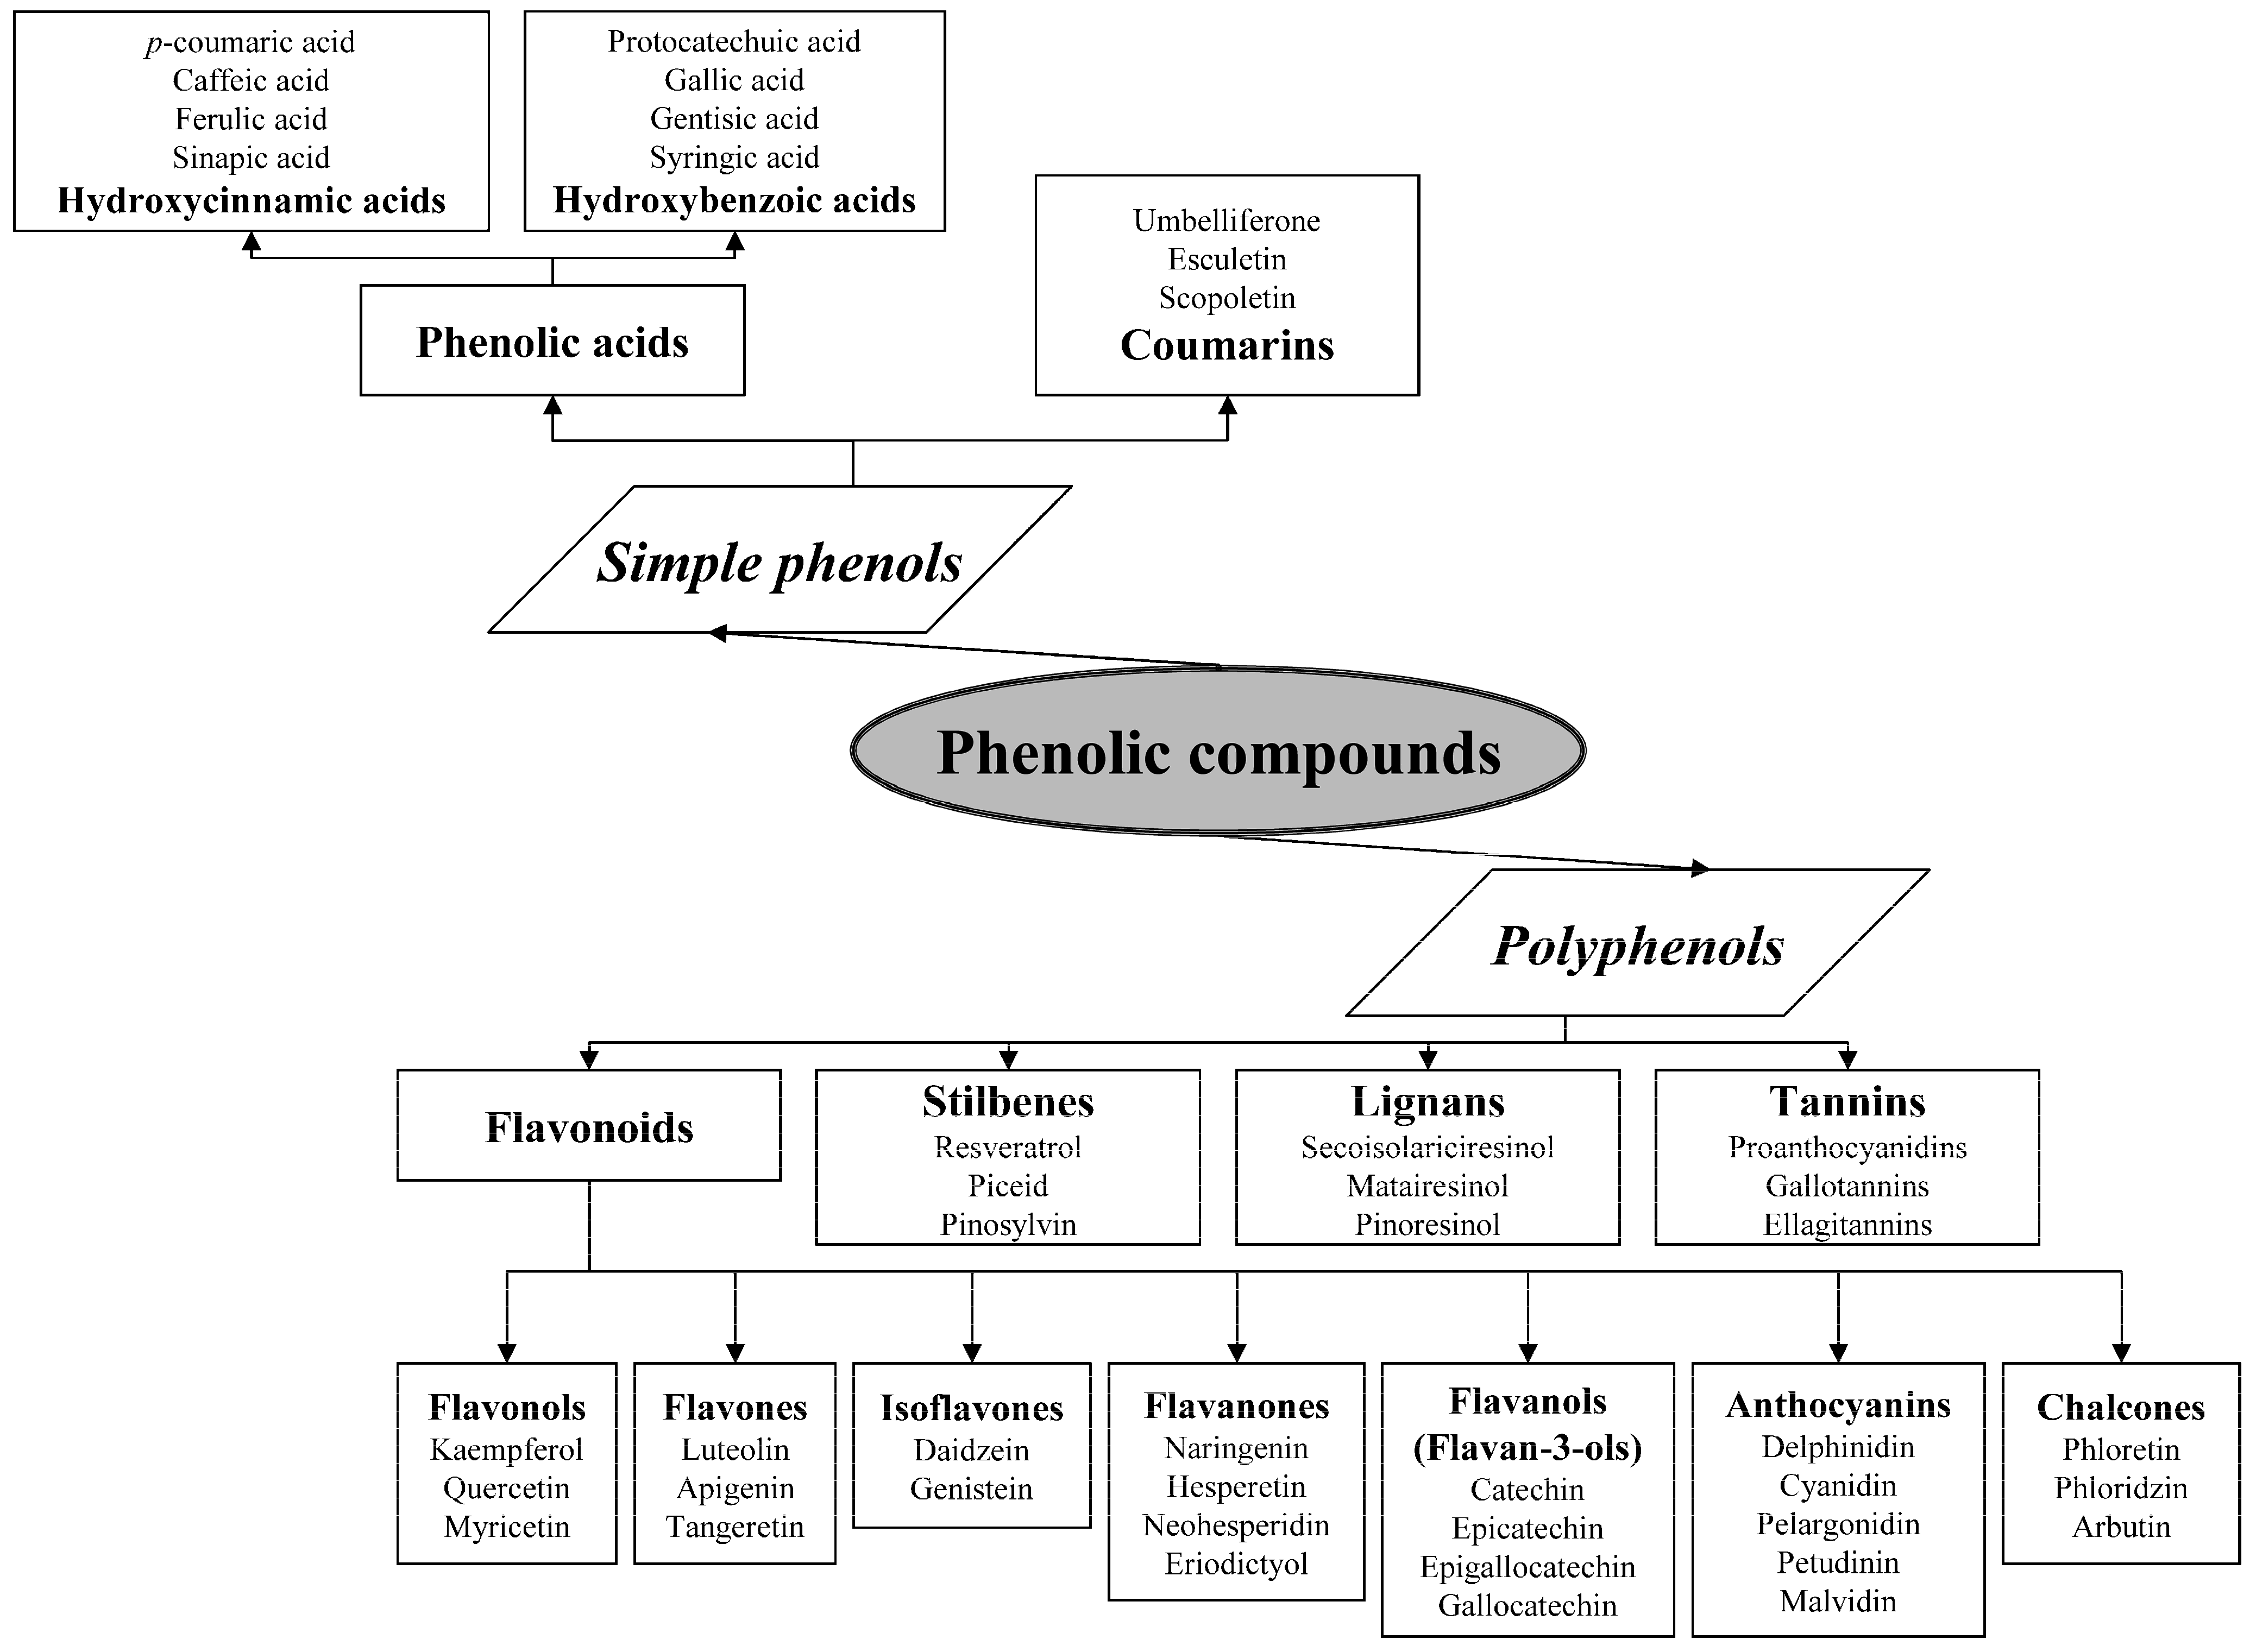 Energie Concept Lignan De Bordeaux cosmetics | free full-text | relevance of natural phenolics